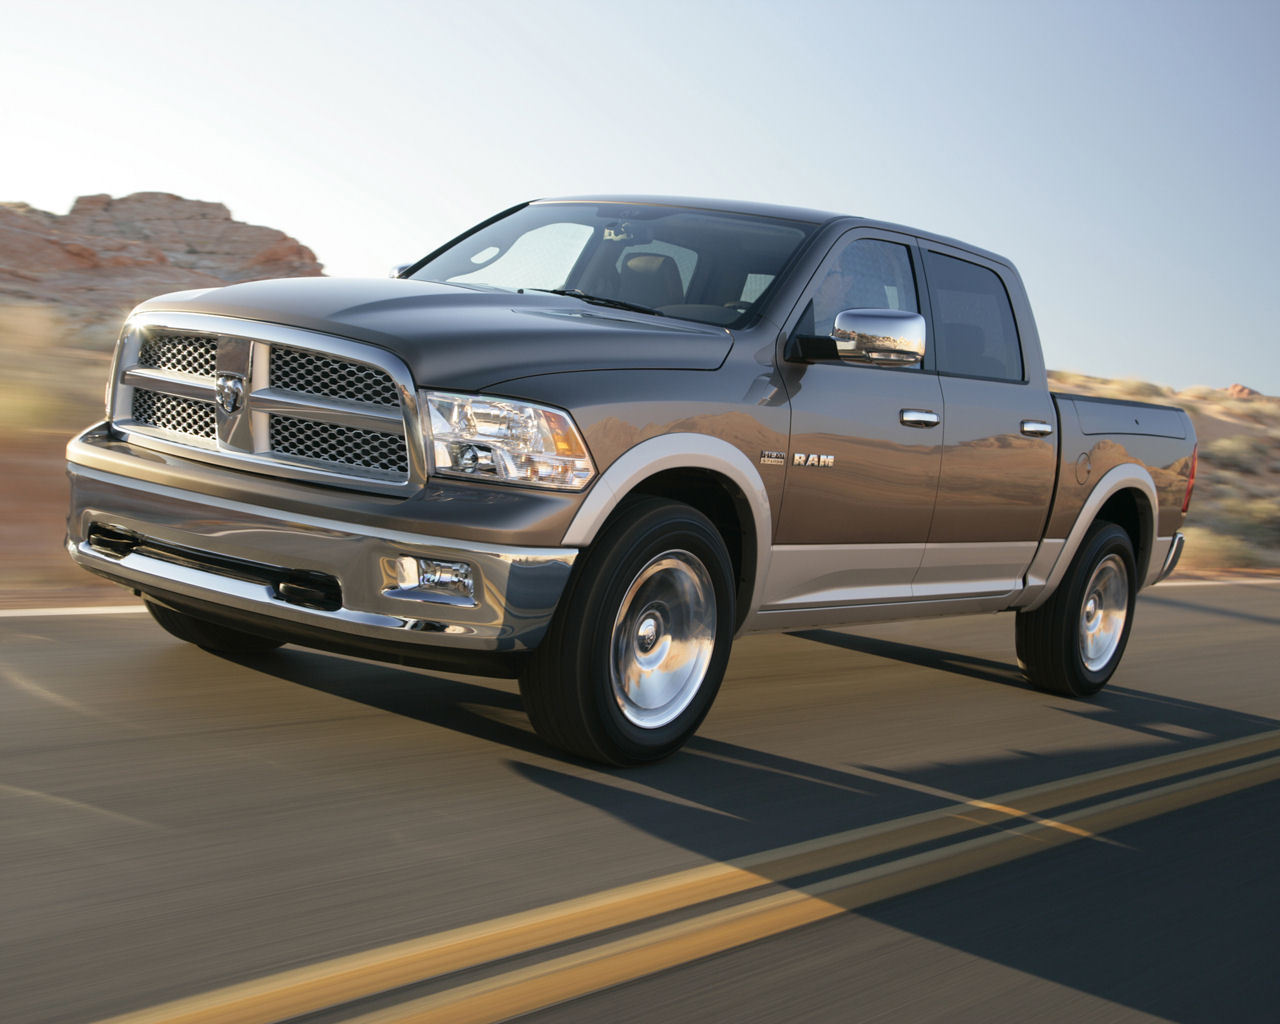 Please right click on the Dodge Ram 1500 wallpaper below and choose 1280x1024